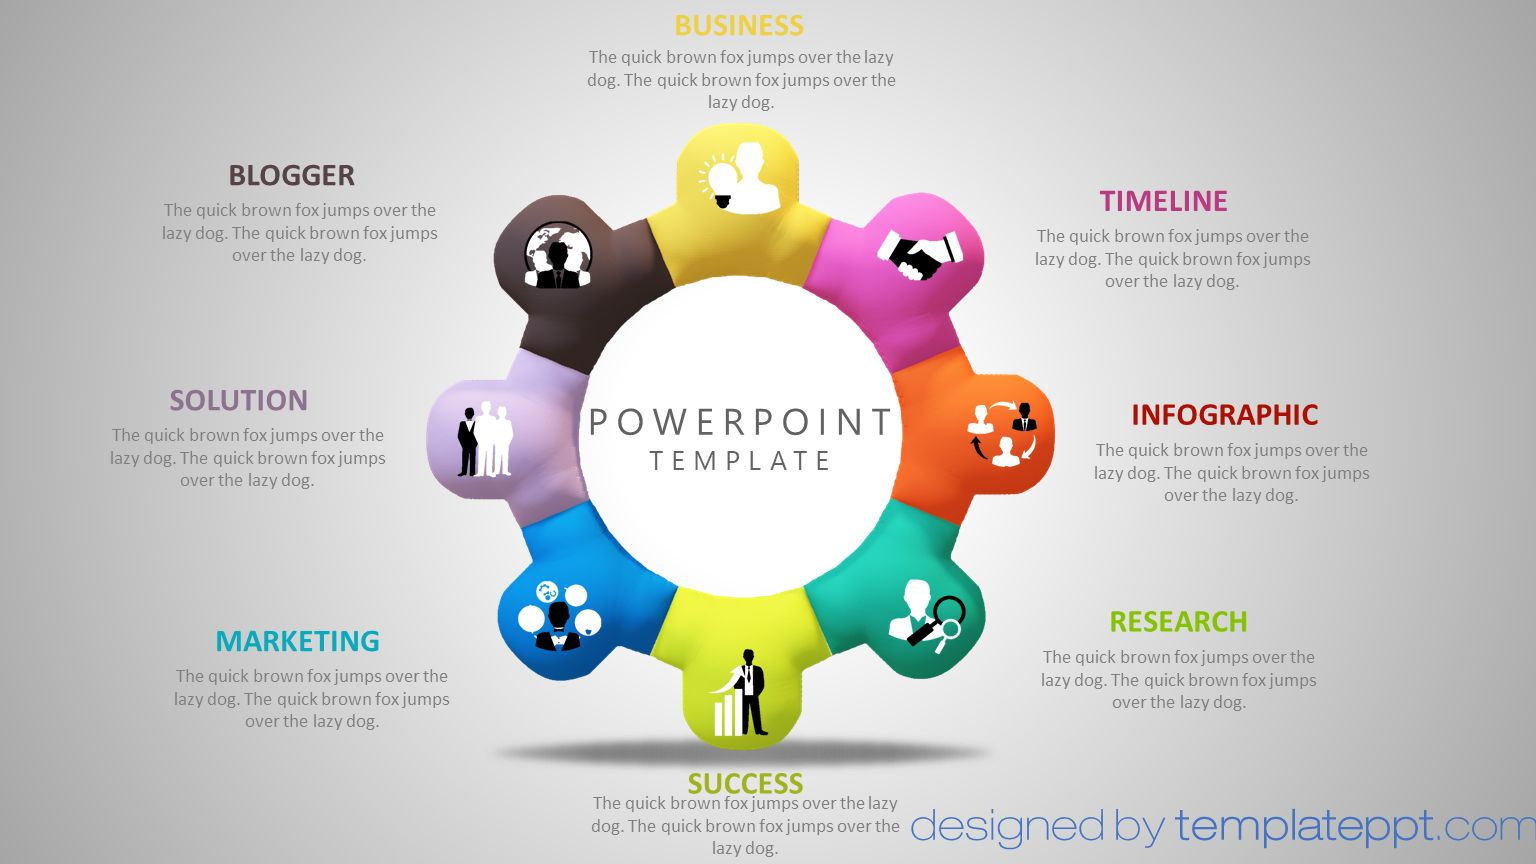 3d Powerpoint Presentation Animation Effects Free Download Regarding Powerpoint Animated Templates Free Download 2010 Nel 2020